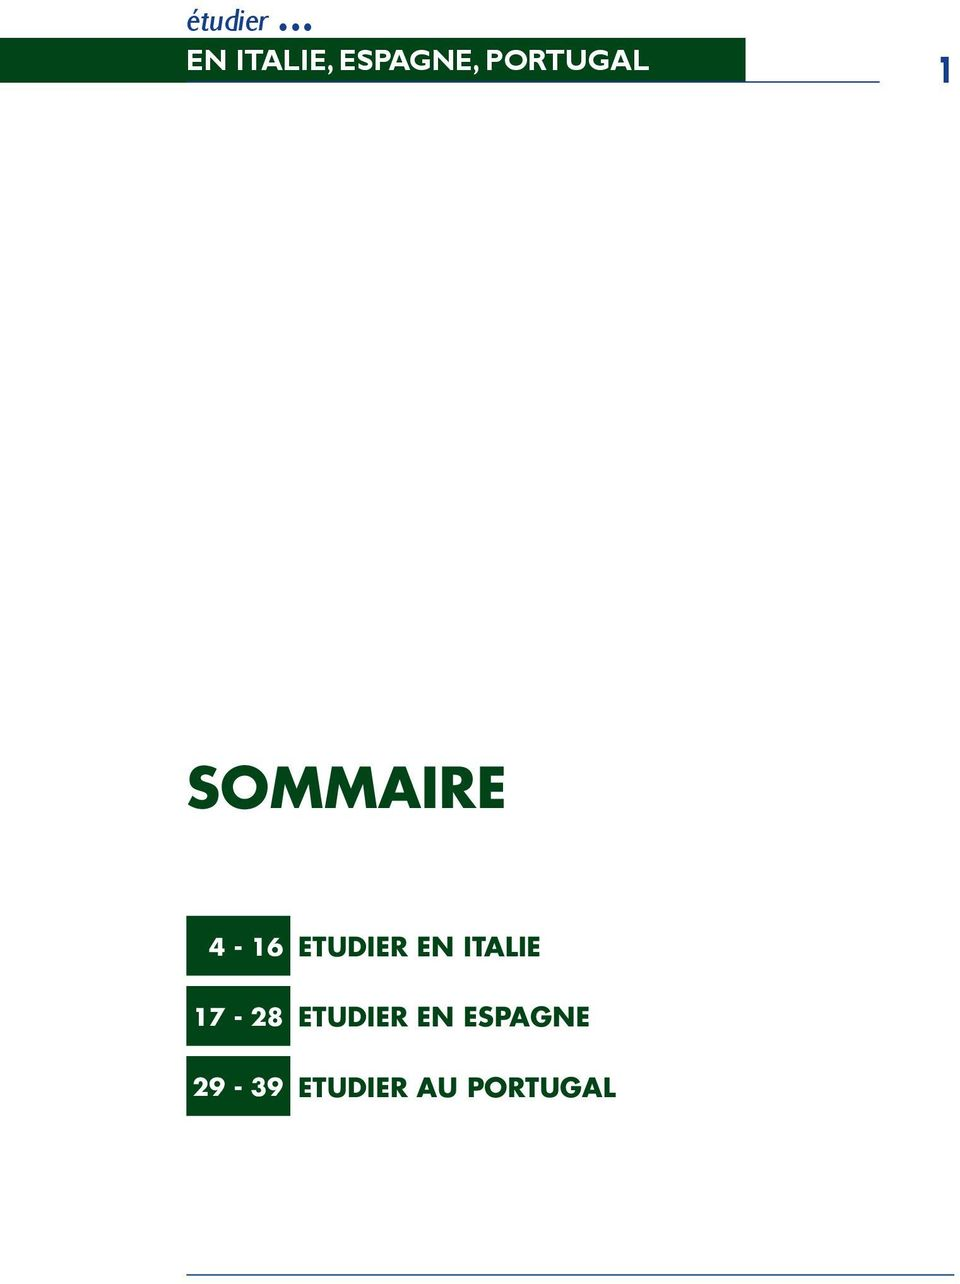 Portugal 1 Sommaire 4-16